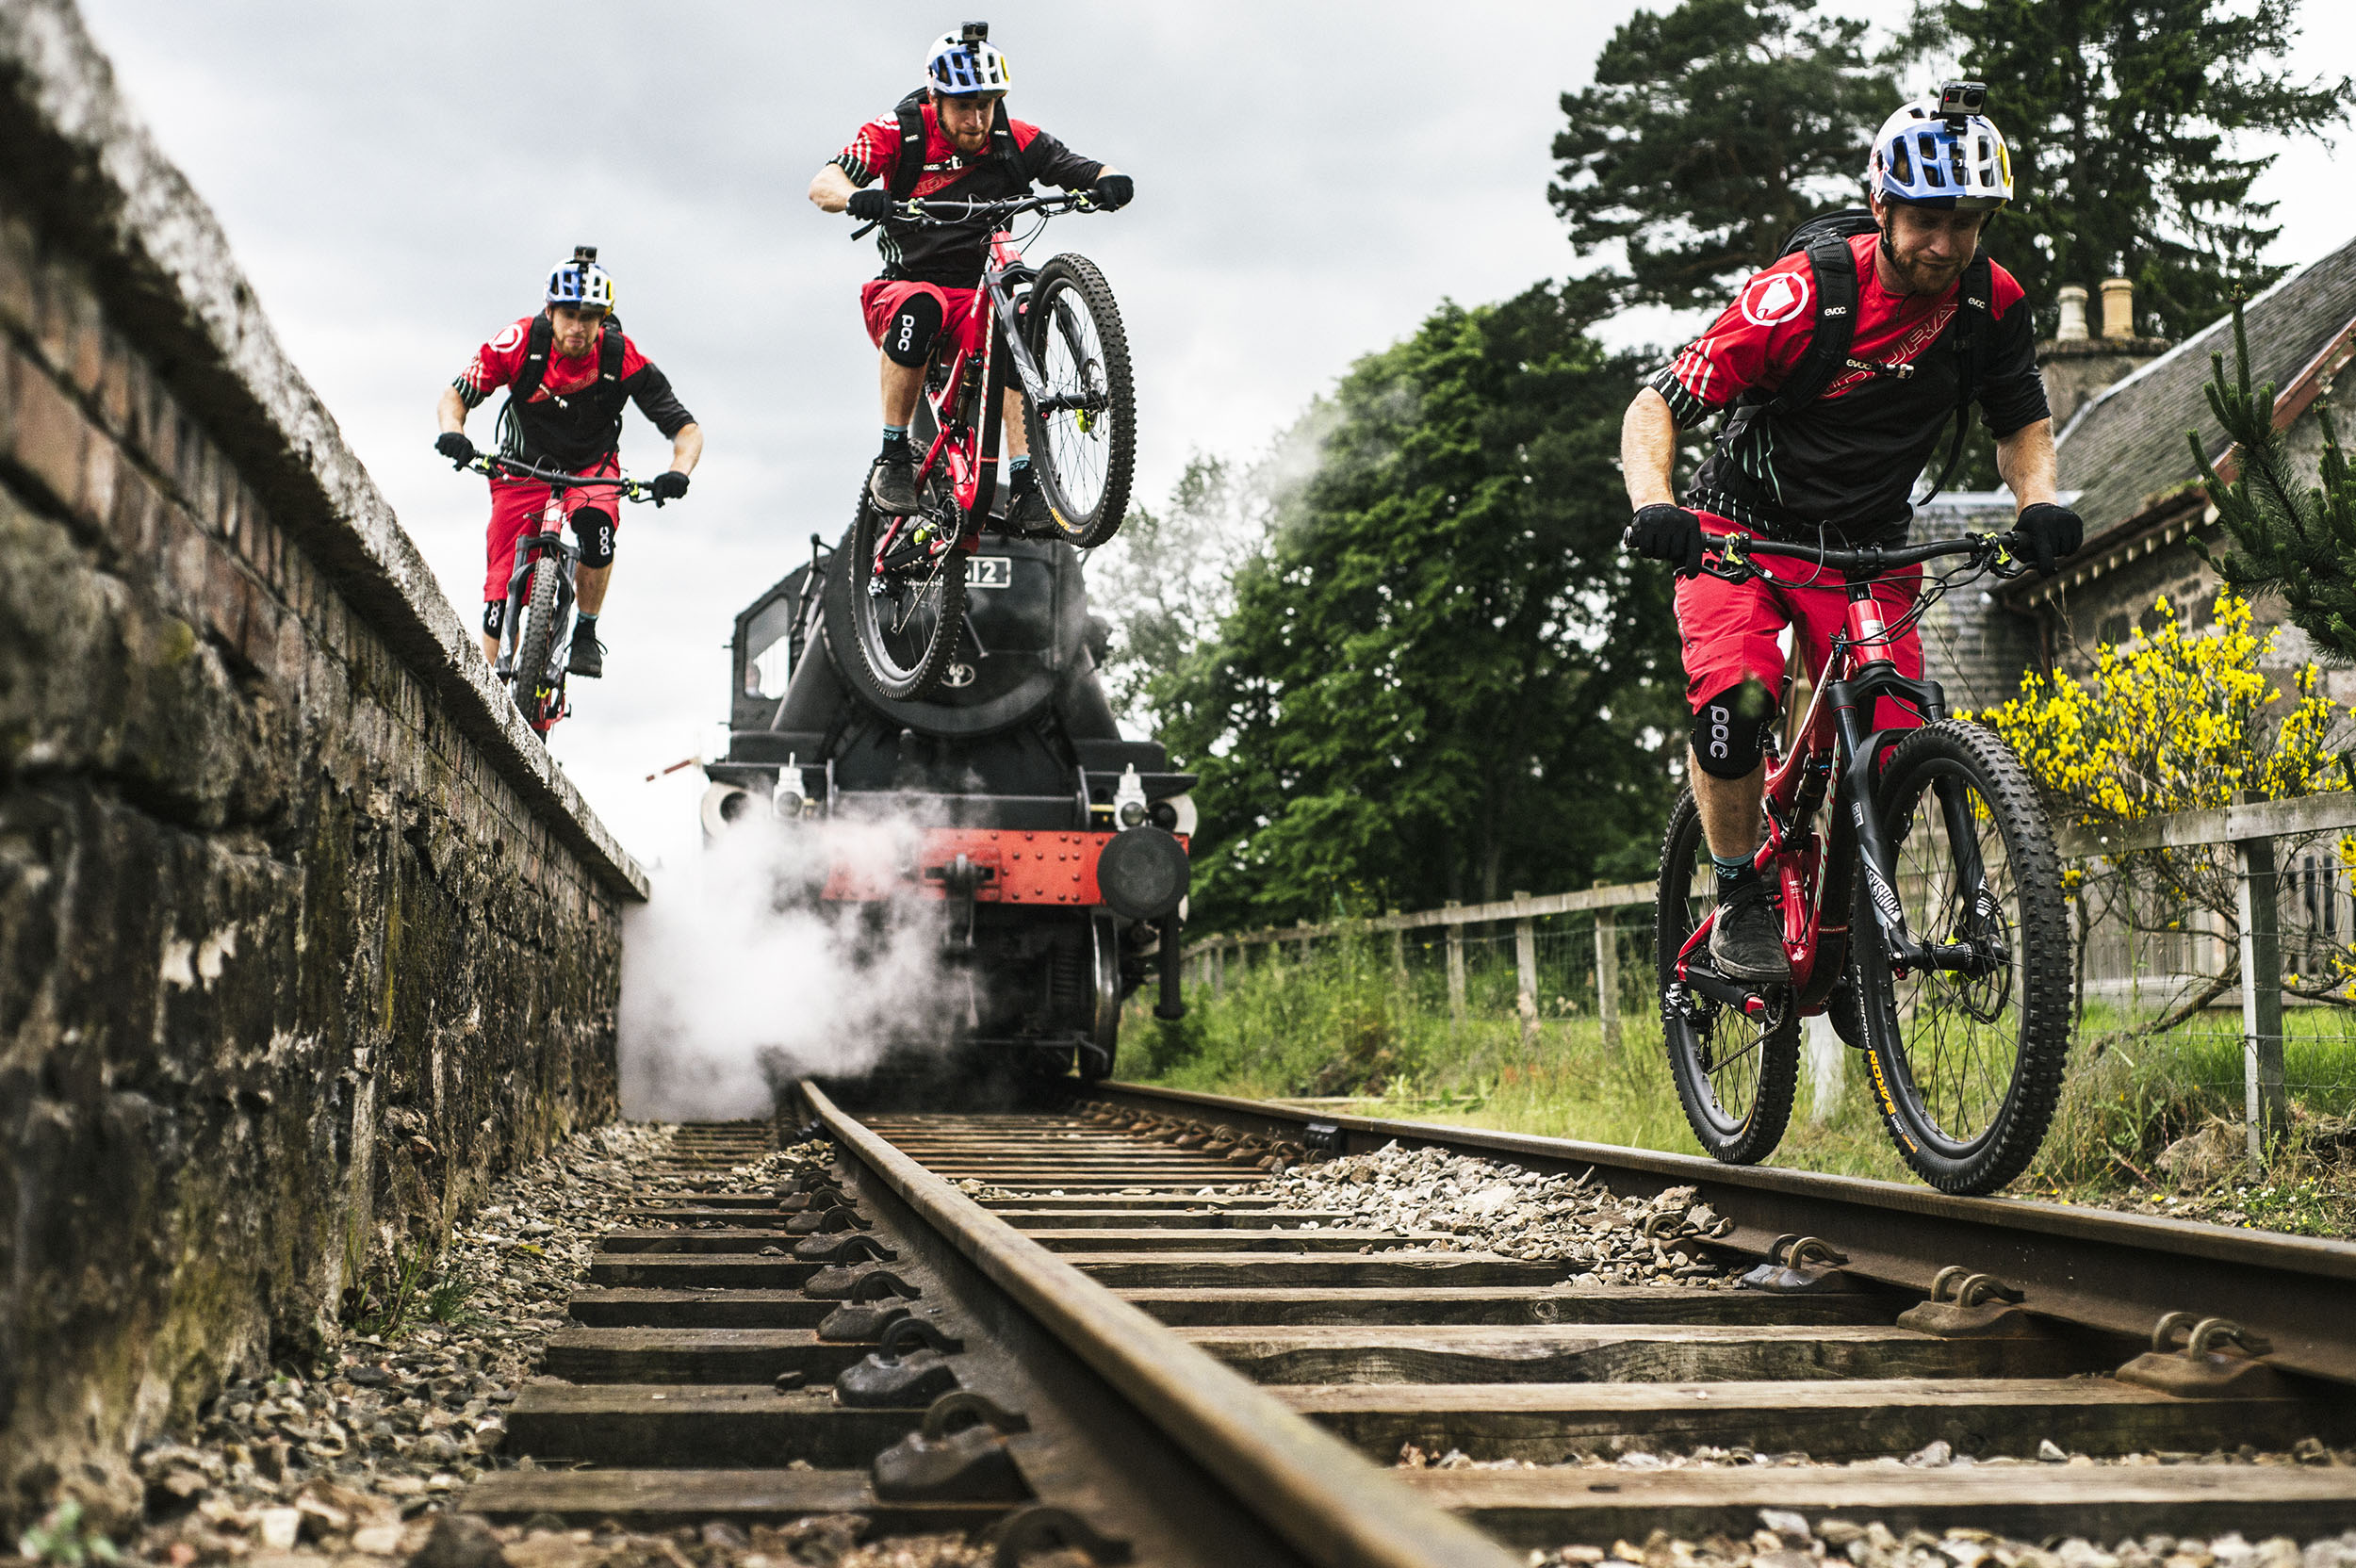 danny_macaskill_01_by_fred-murray-red-bull-content-pool